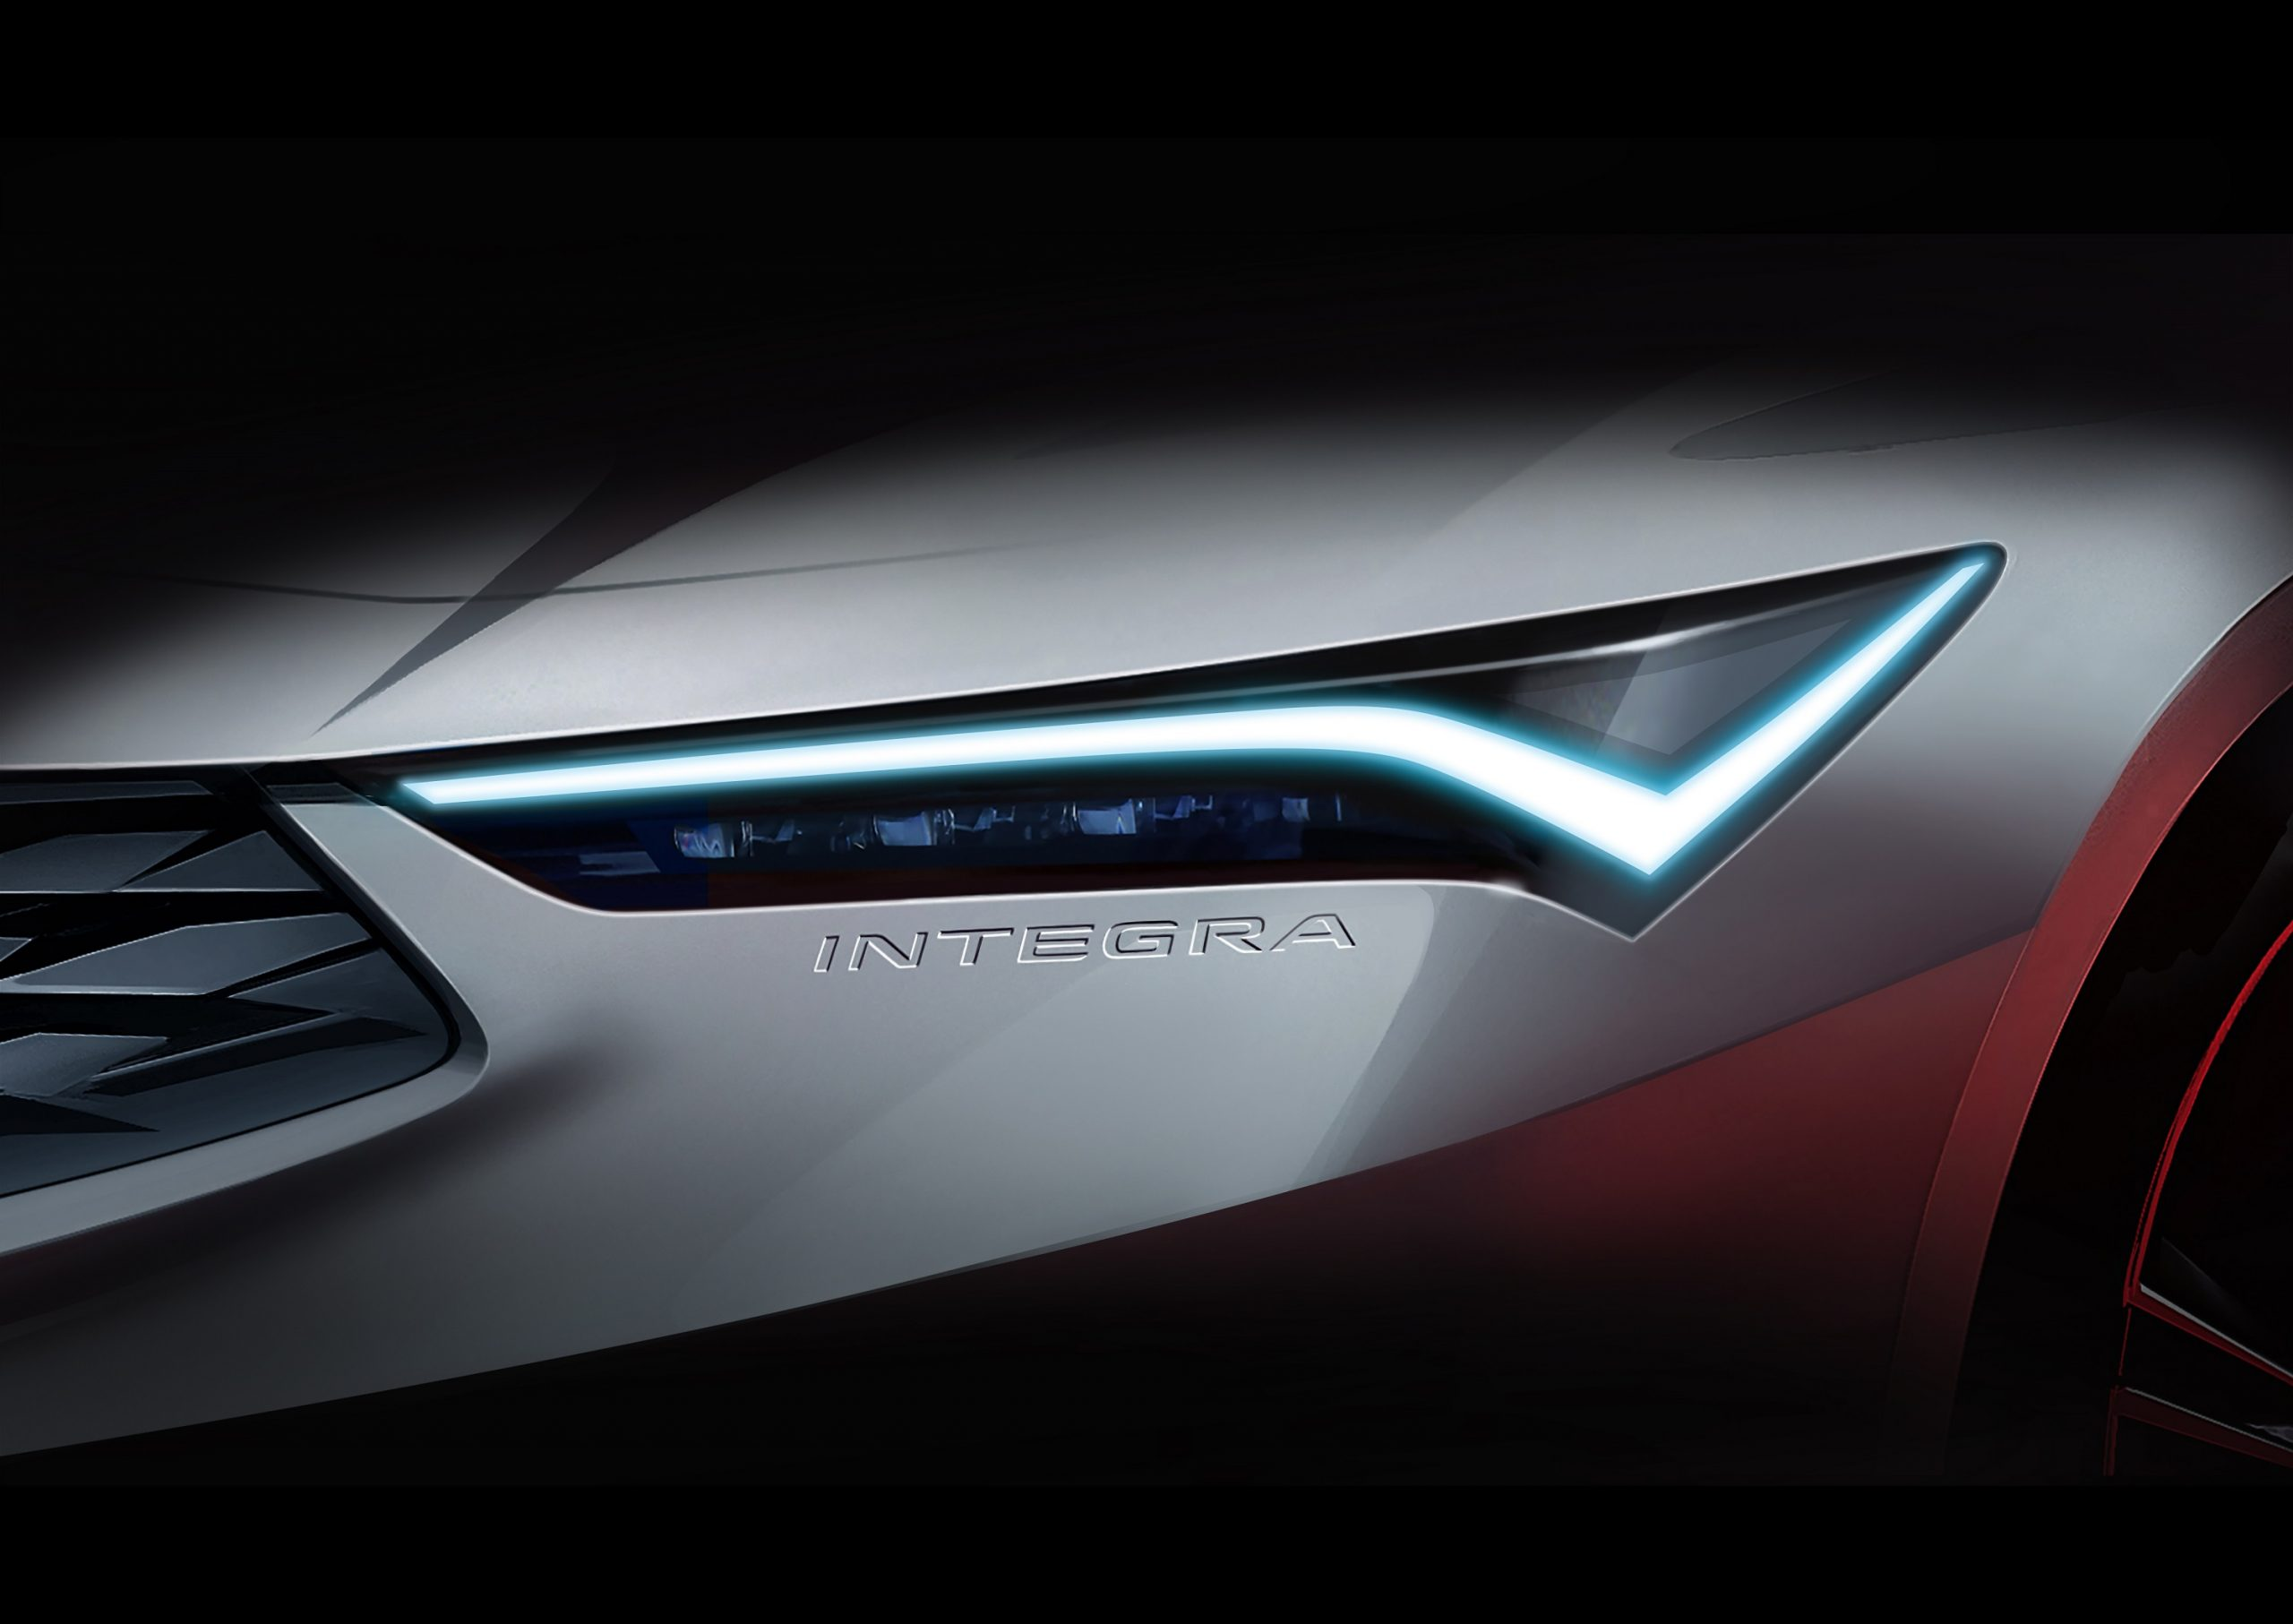 The headlight of the new Acura Integra shot close from the front 3/4 angle